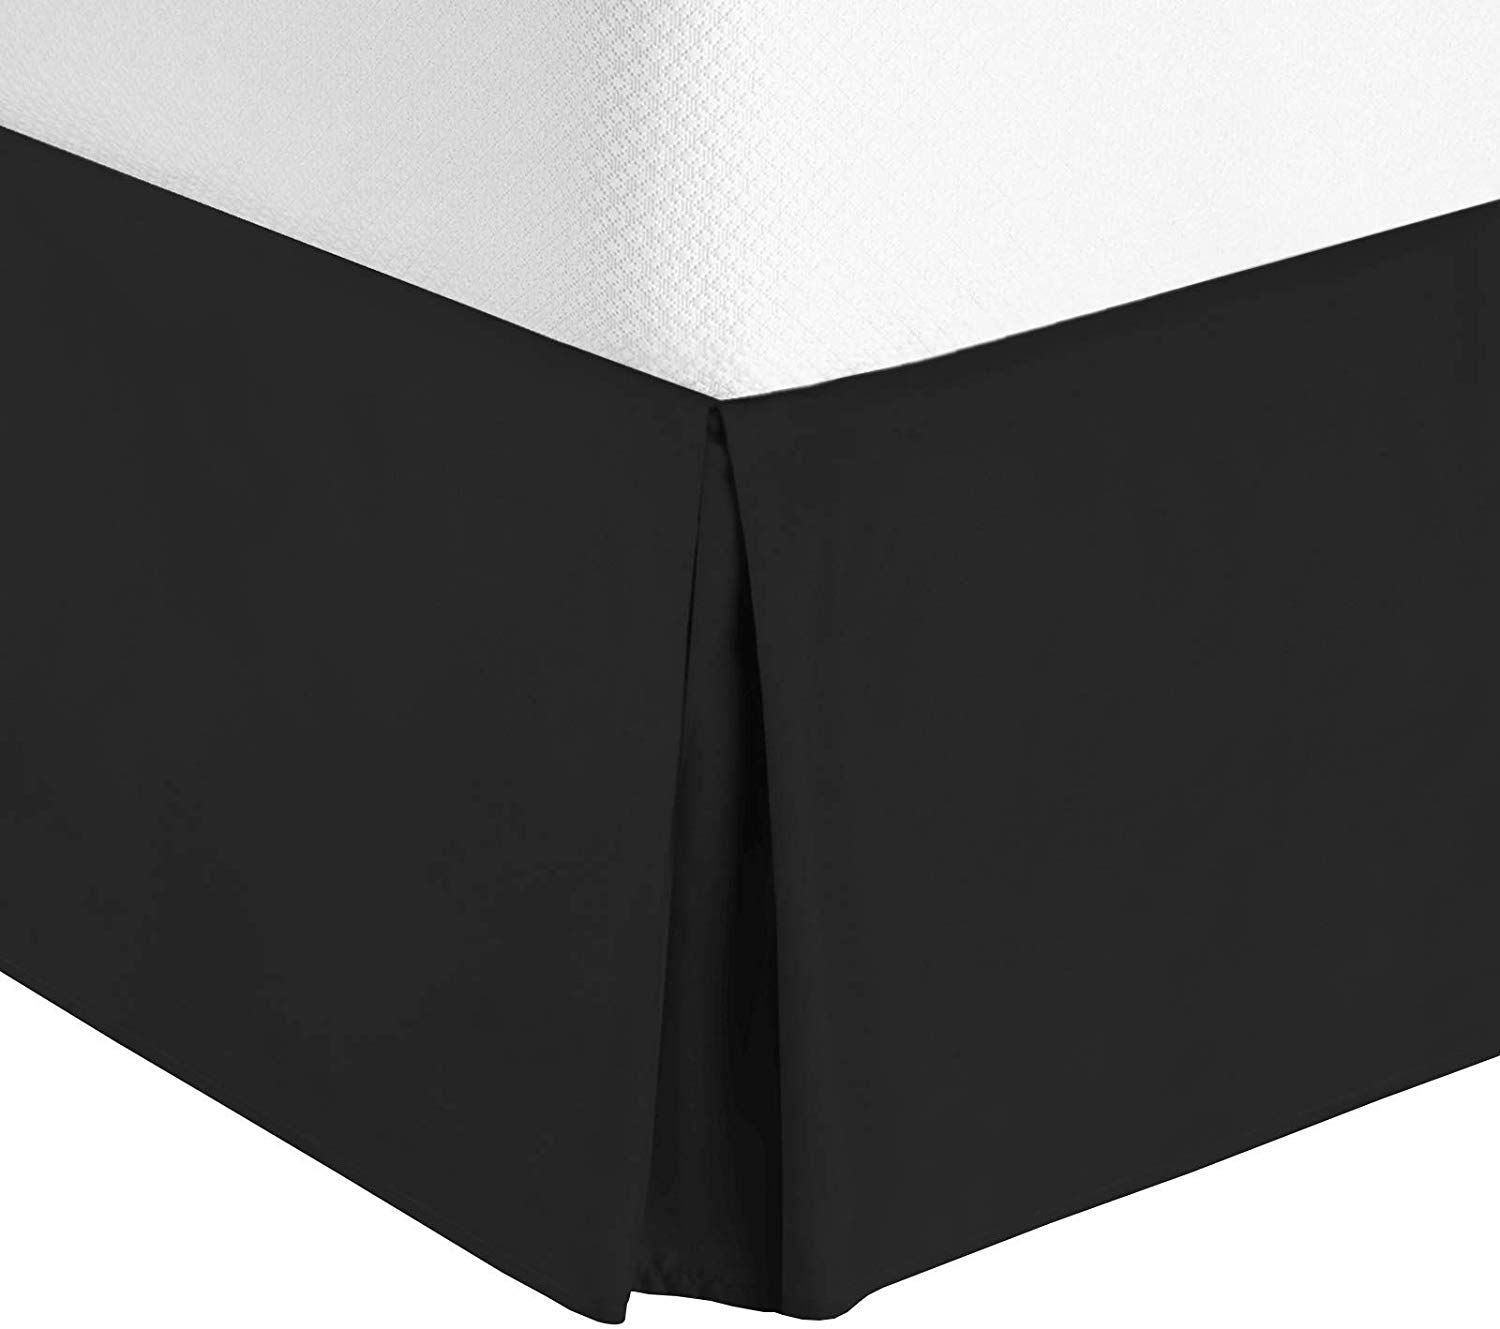 15 Inch Skirt Length Luxury Brushed Microfiber Dust Ruffle,Wrinkle and Fade Resistant Solid COSYJOY Pleated Bed Skirt Black, King